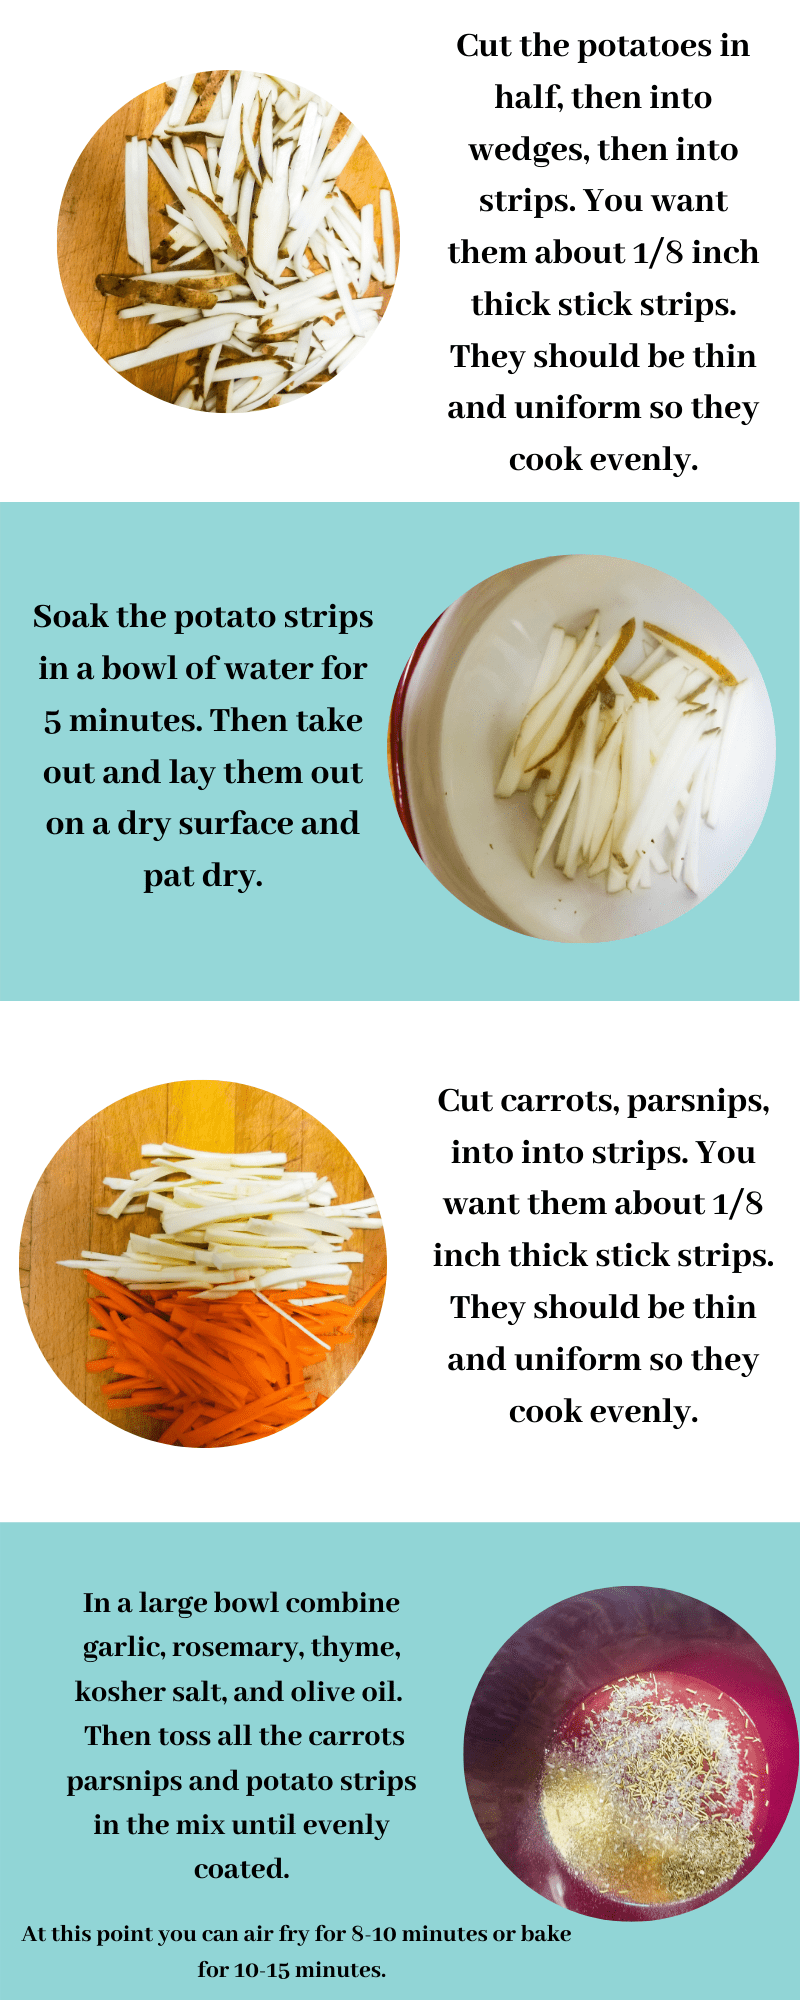 How to make parsnip carrot fries picture steps